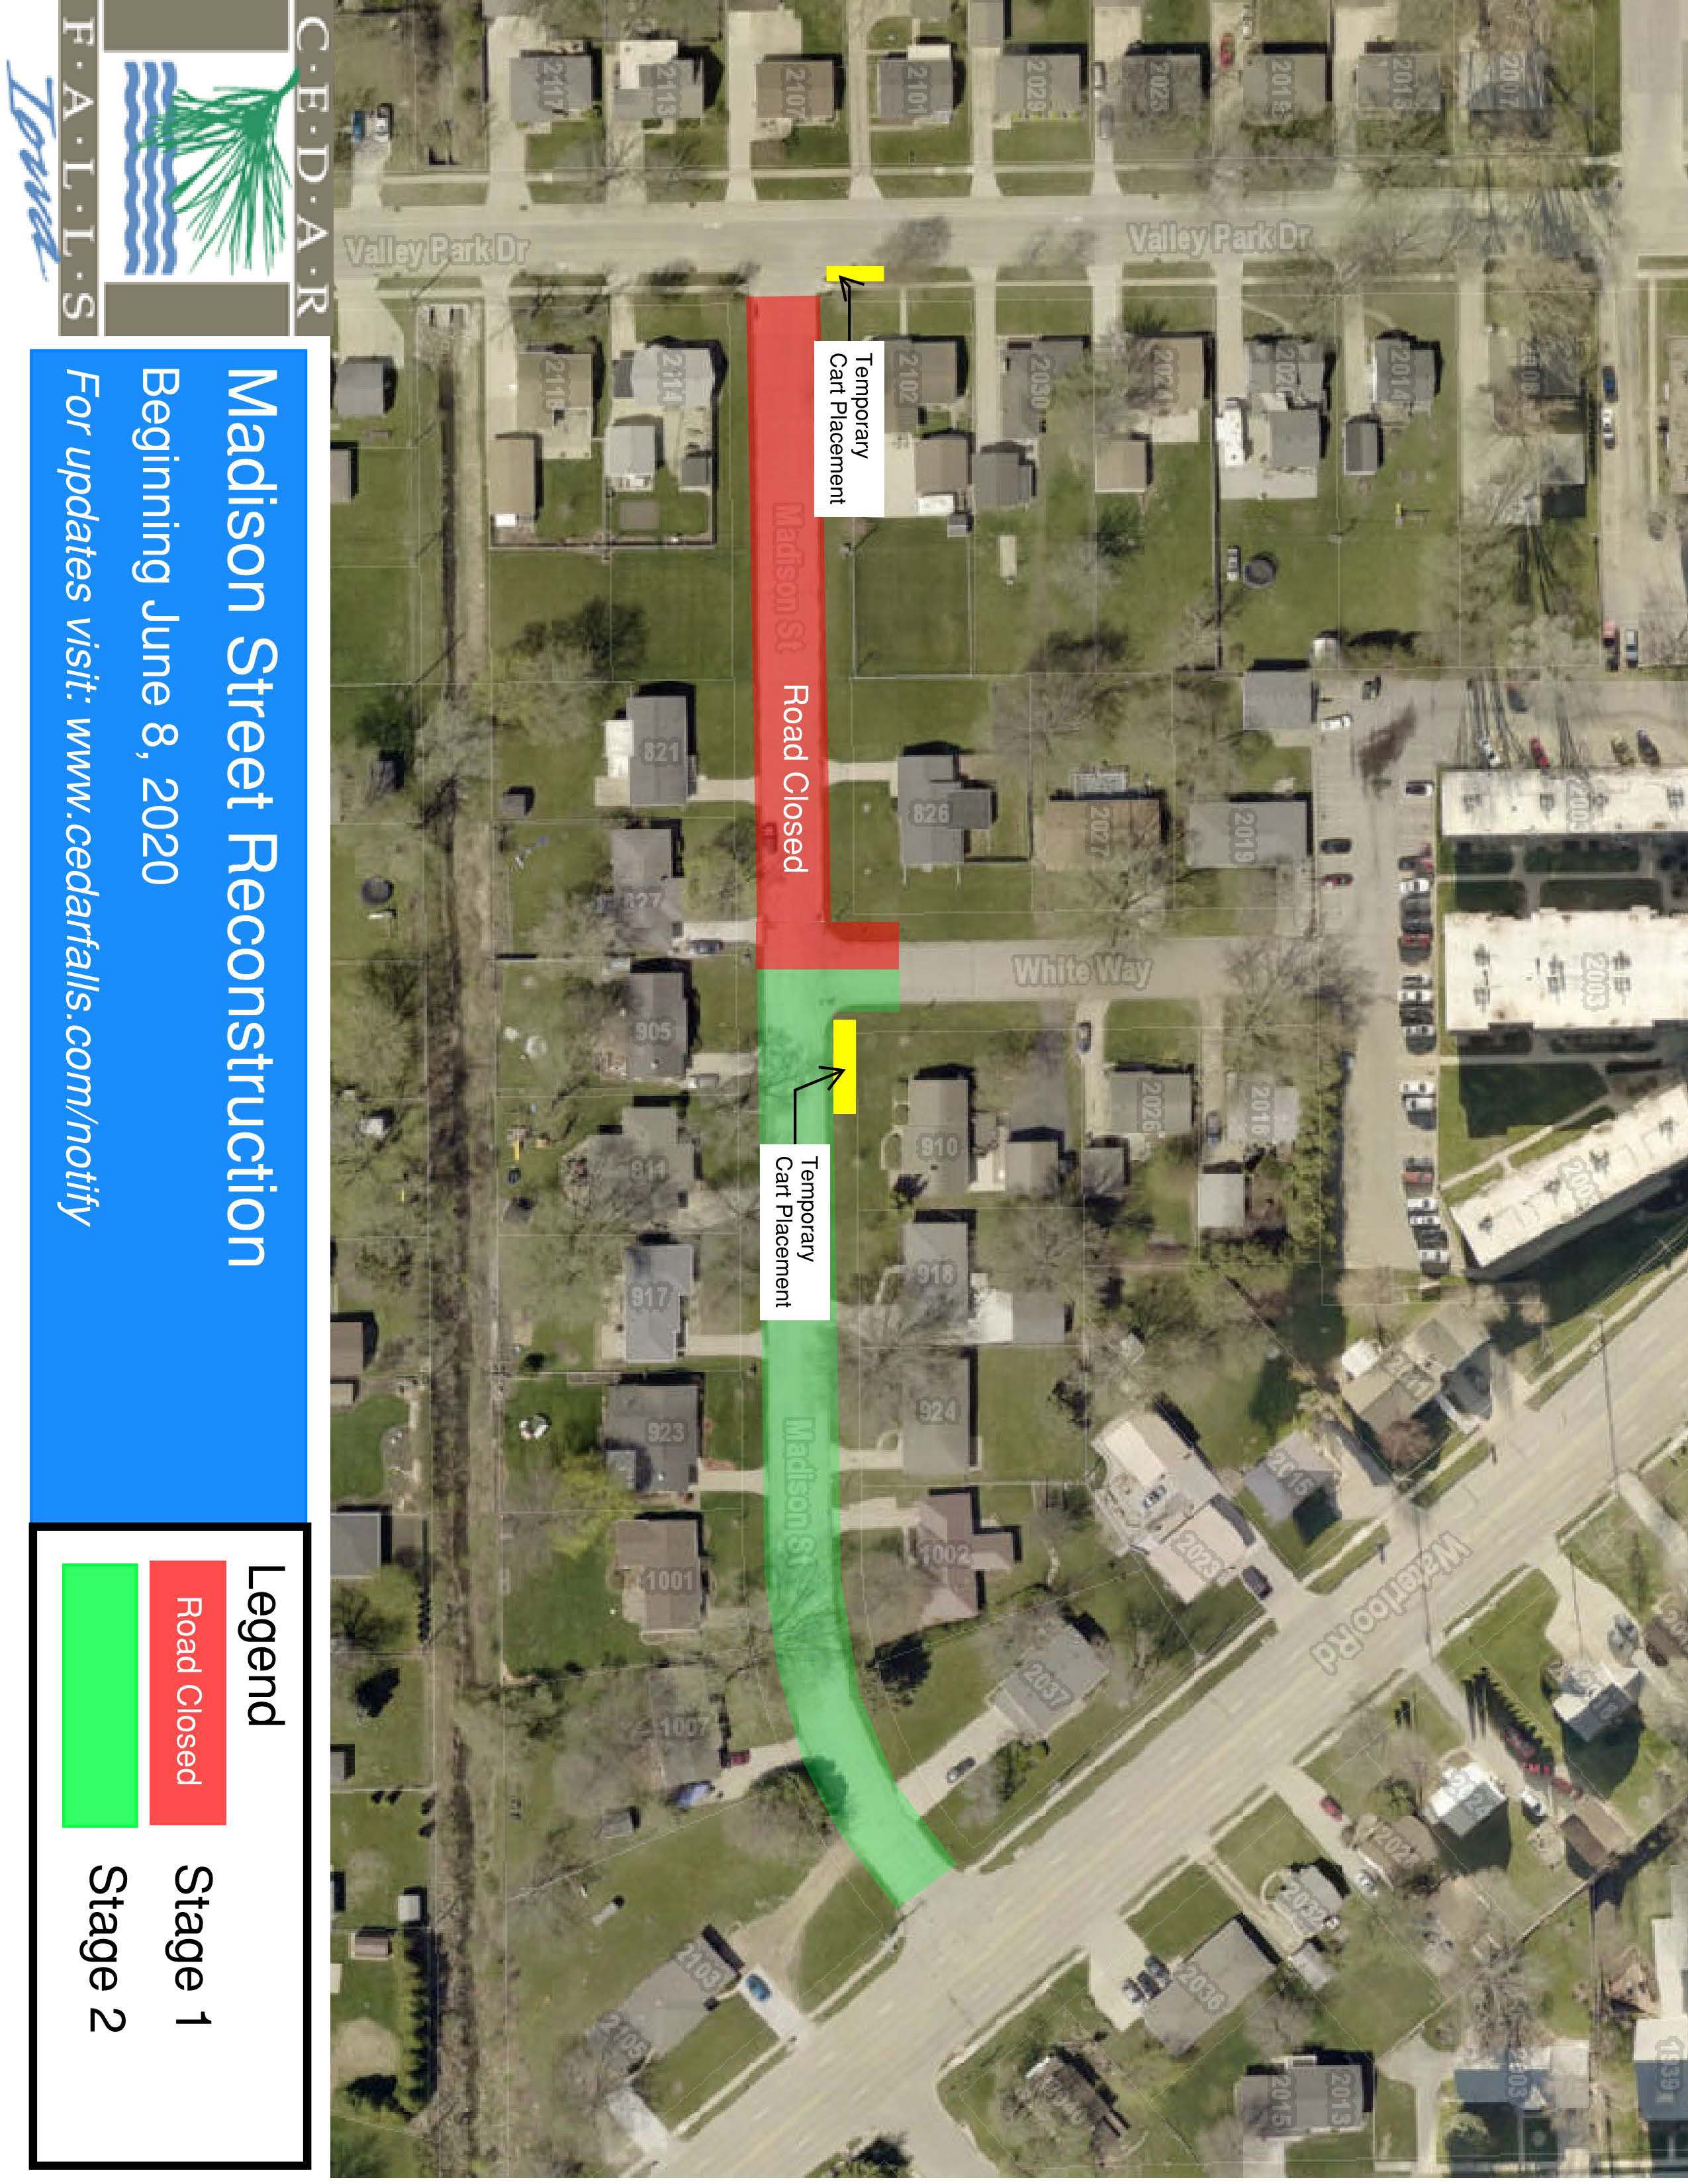 Madison St Closure - Stage 1 Map